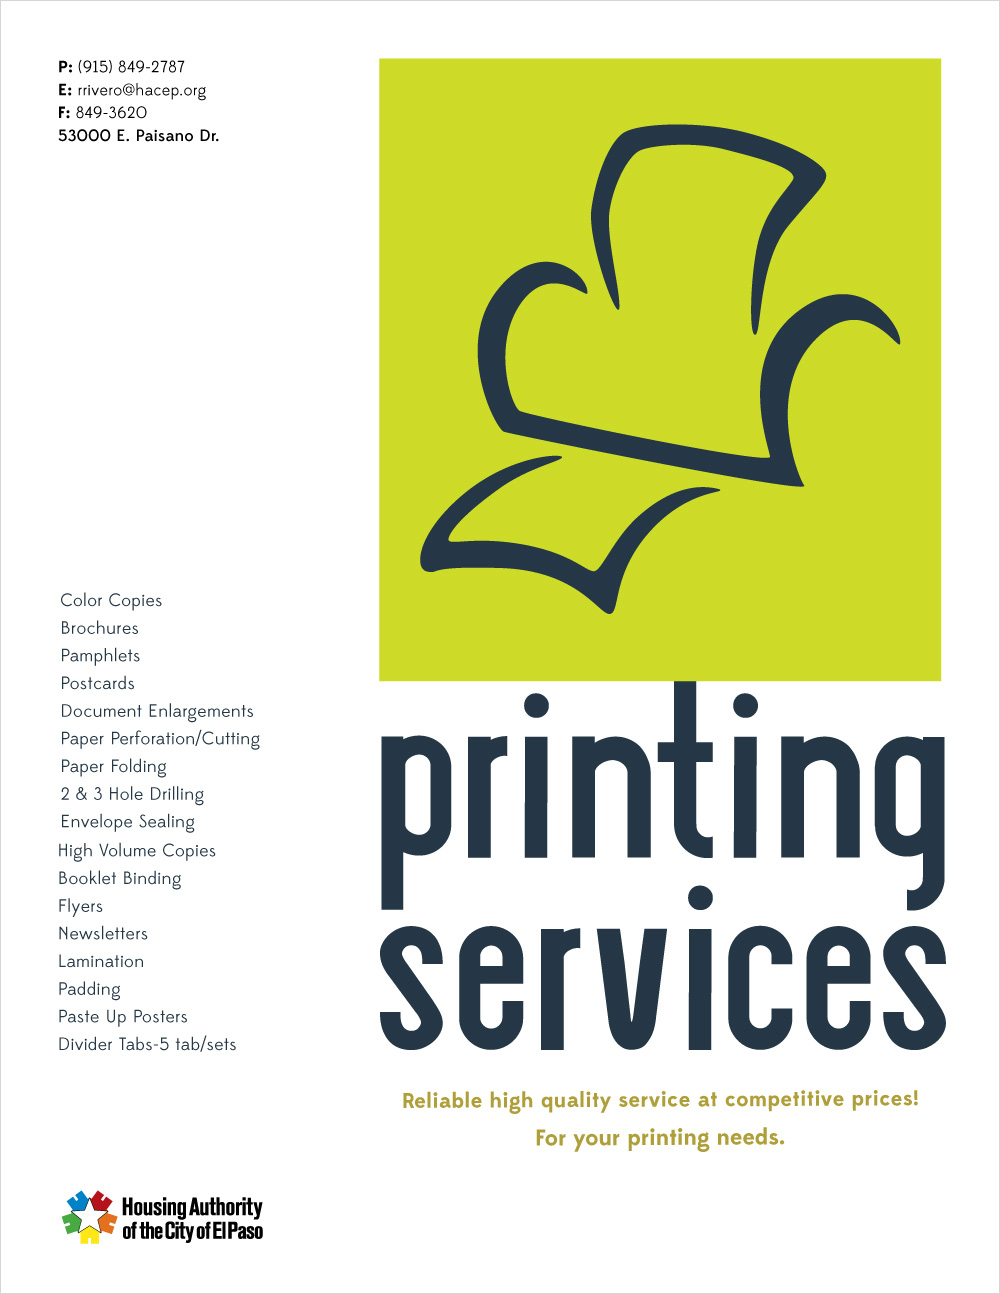 HACEP Printing Services Poster (Side 1)